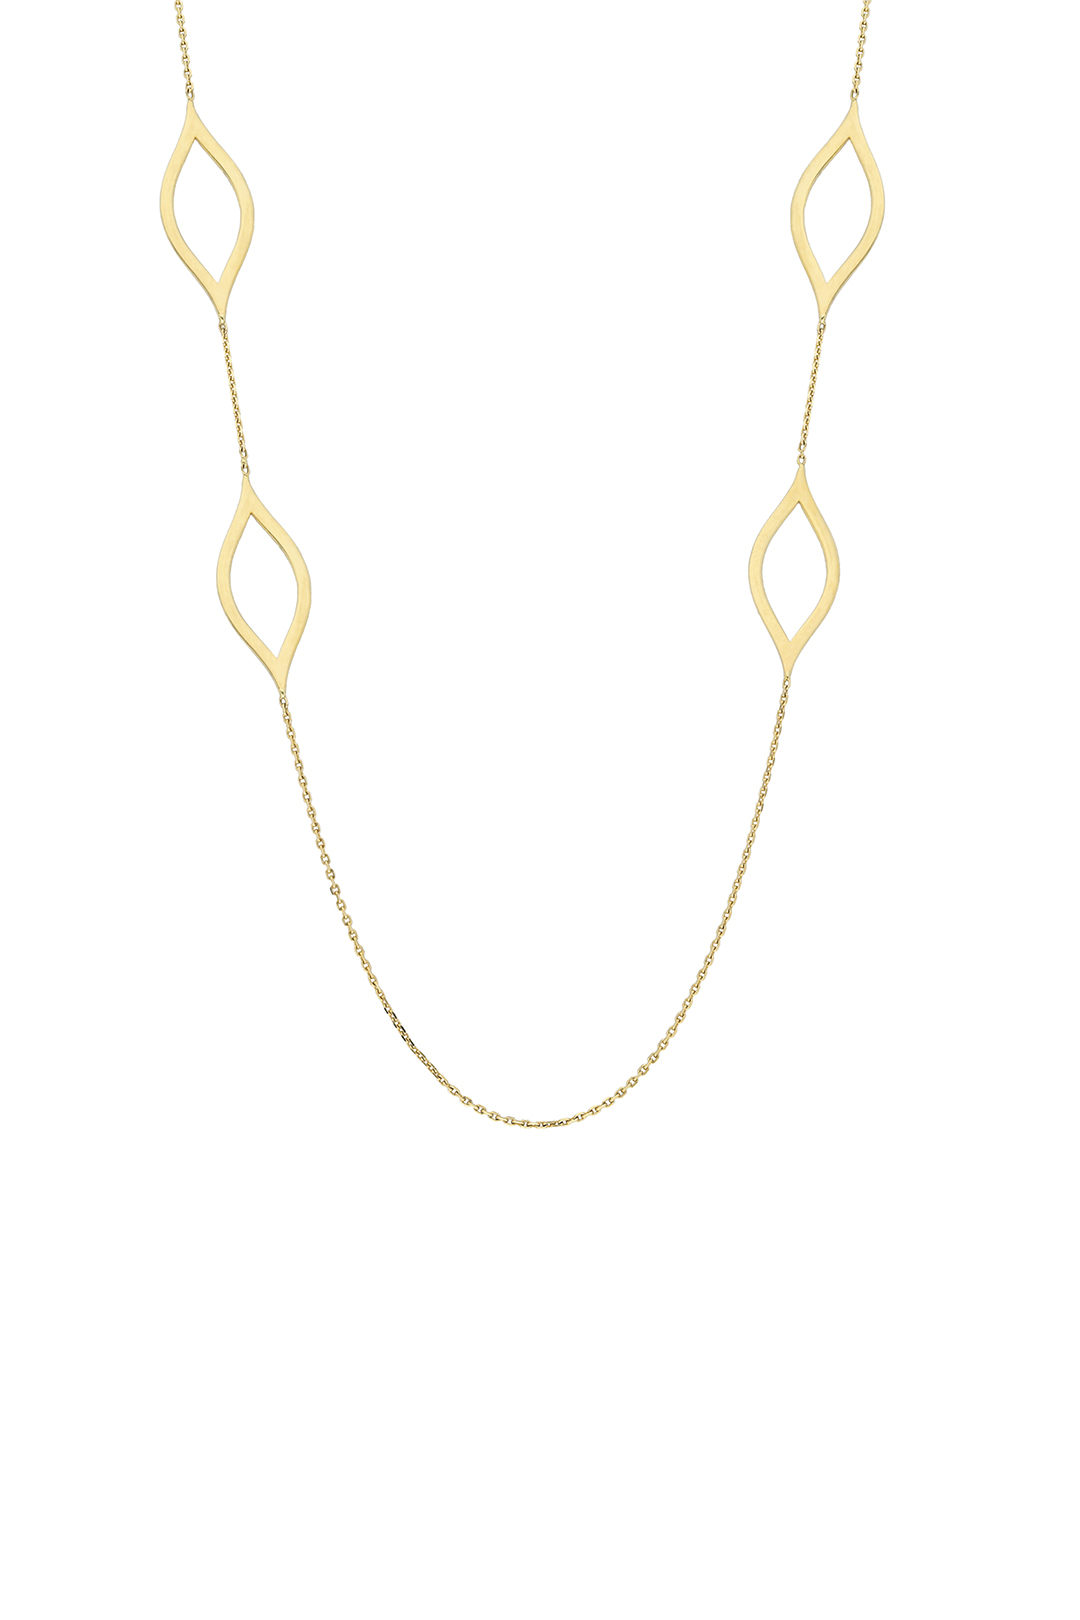 MARQUISE LONG CHAIN NECKLACE